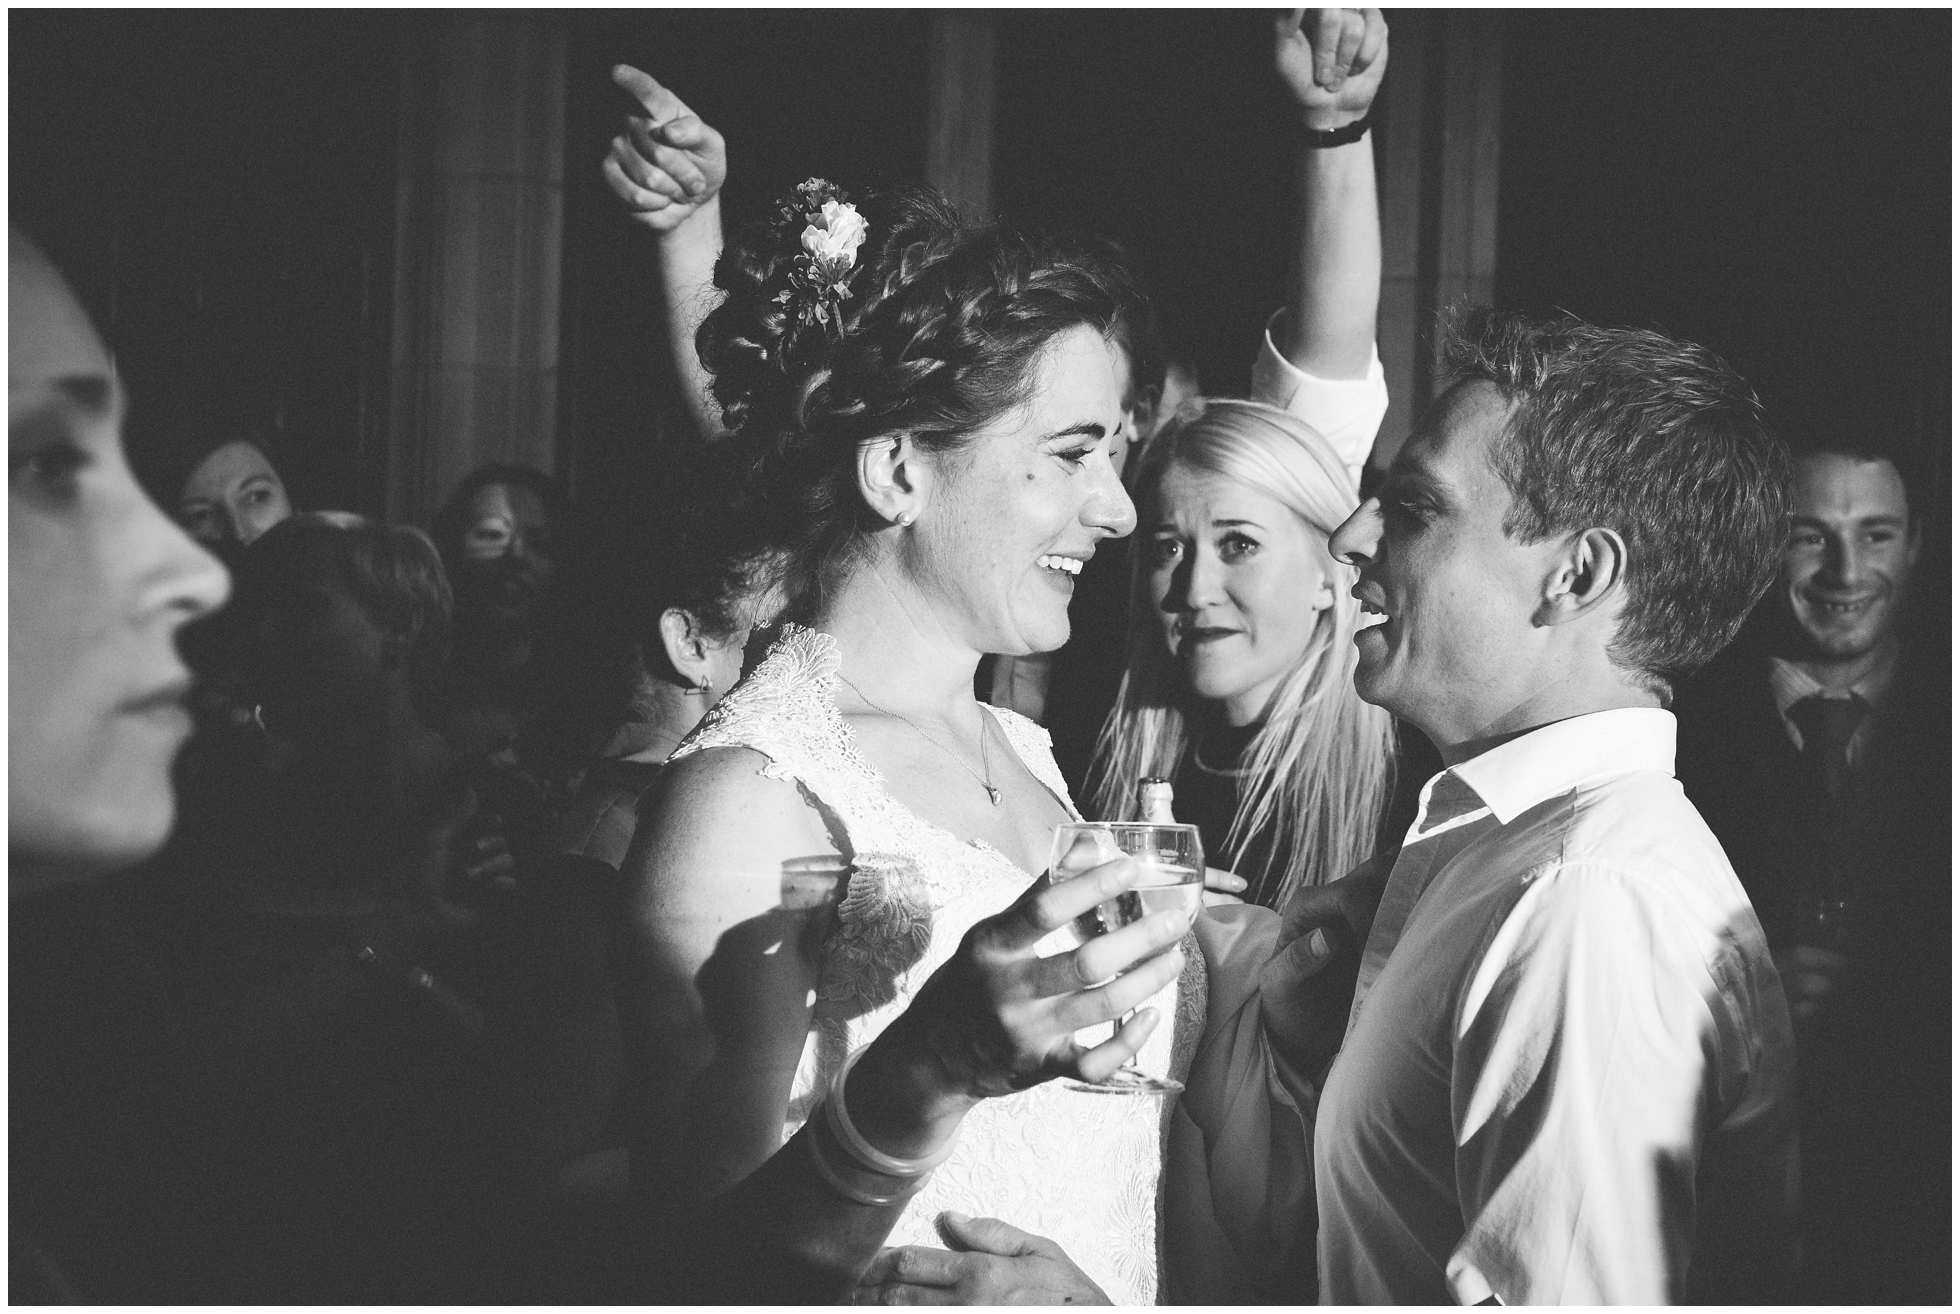 A proud bride and crying guest